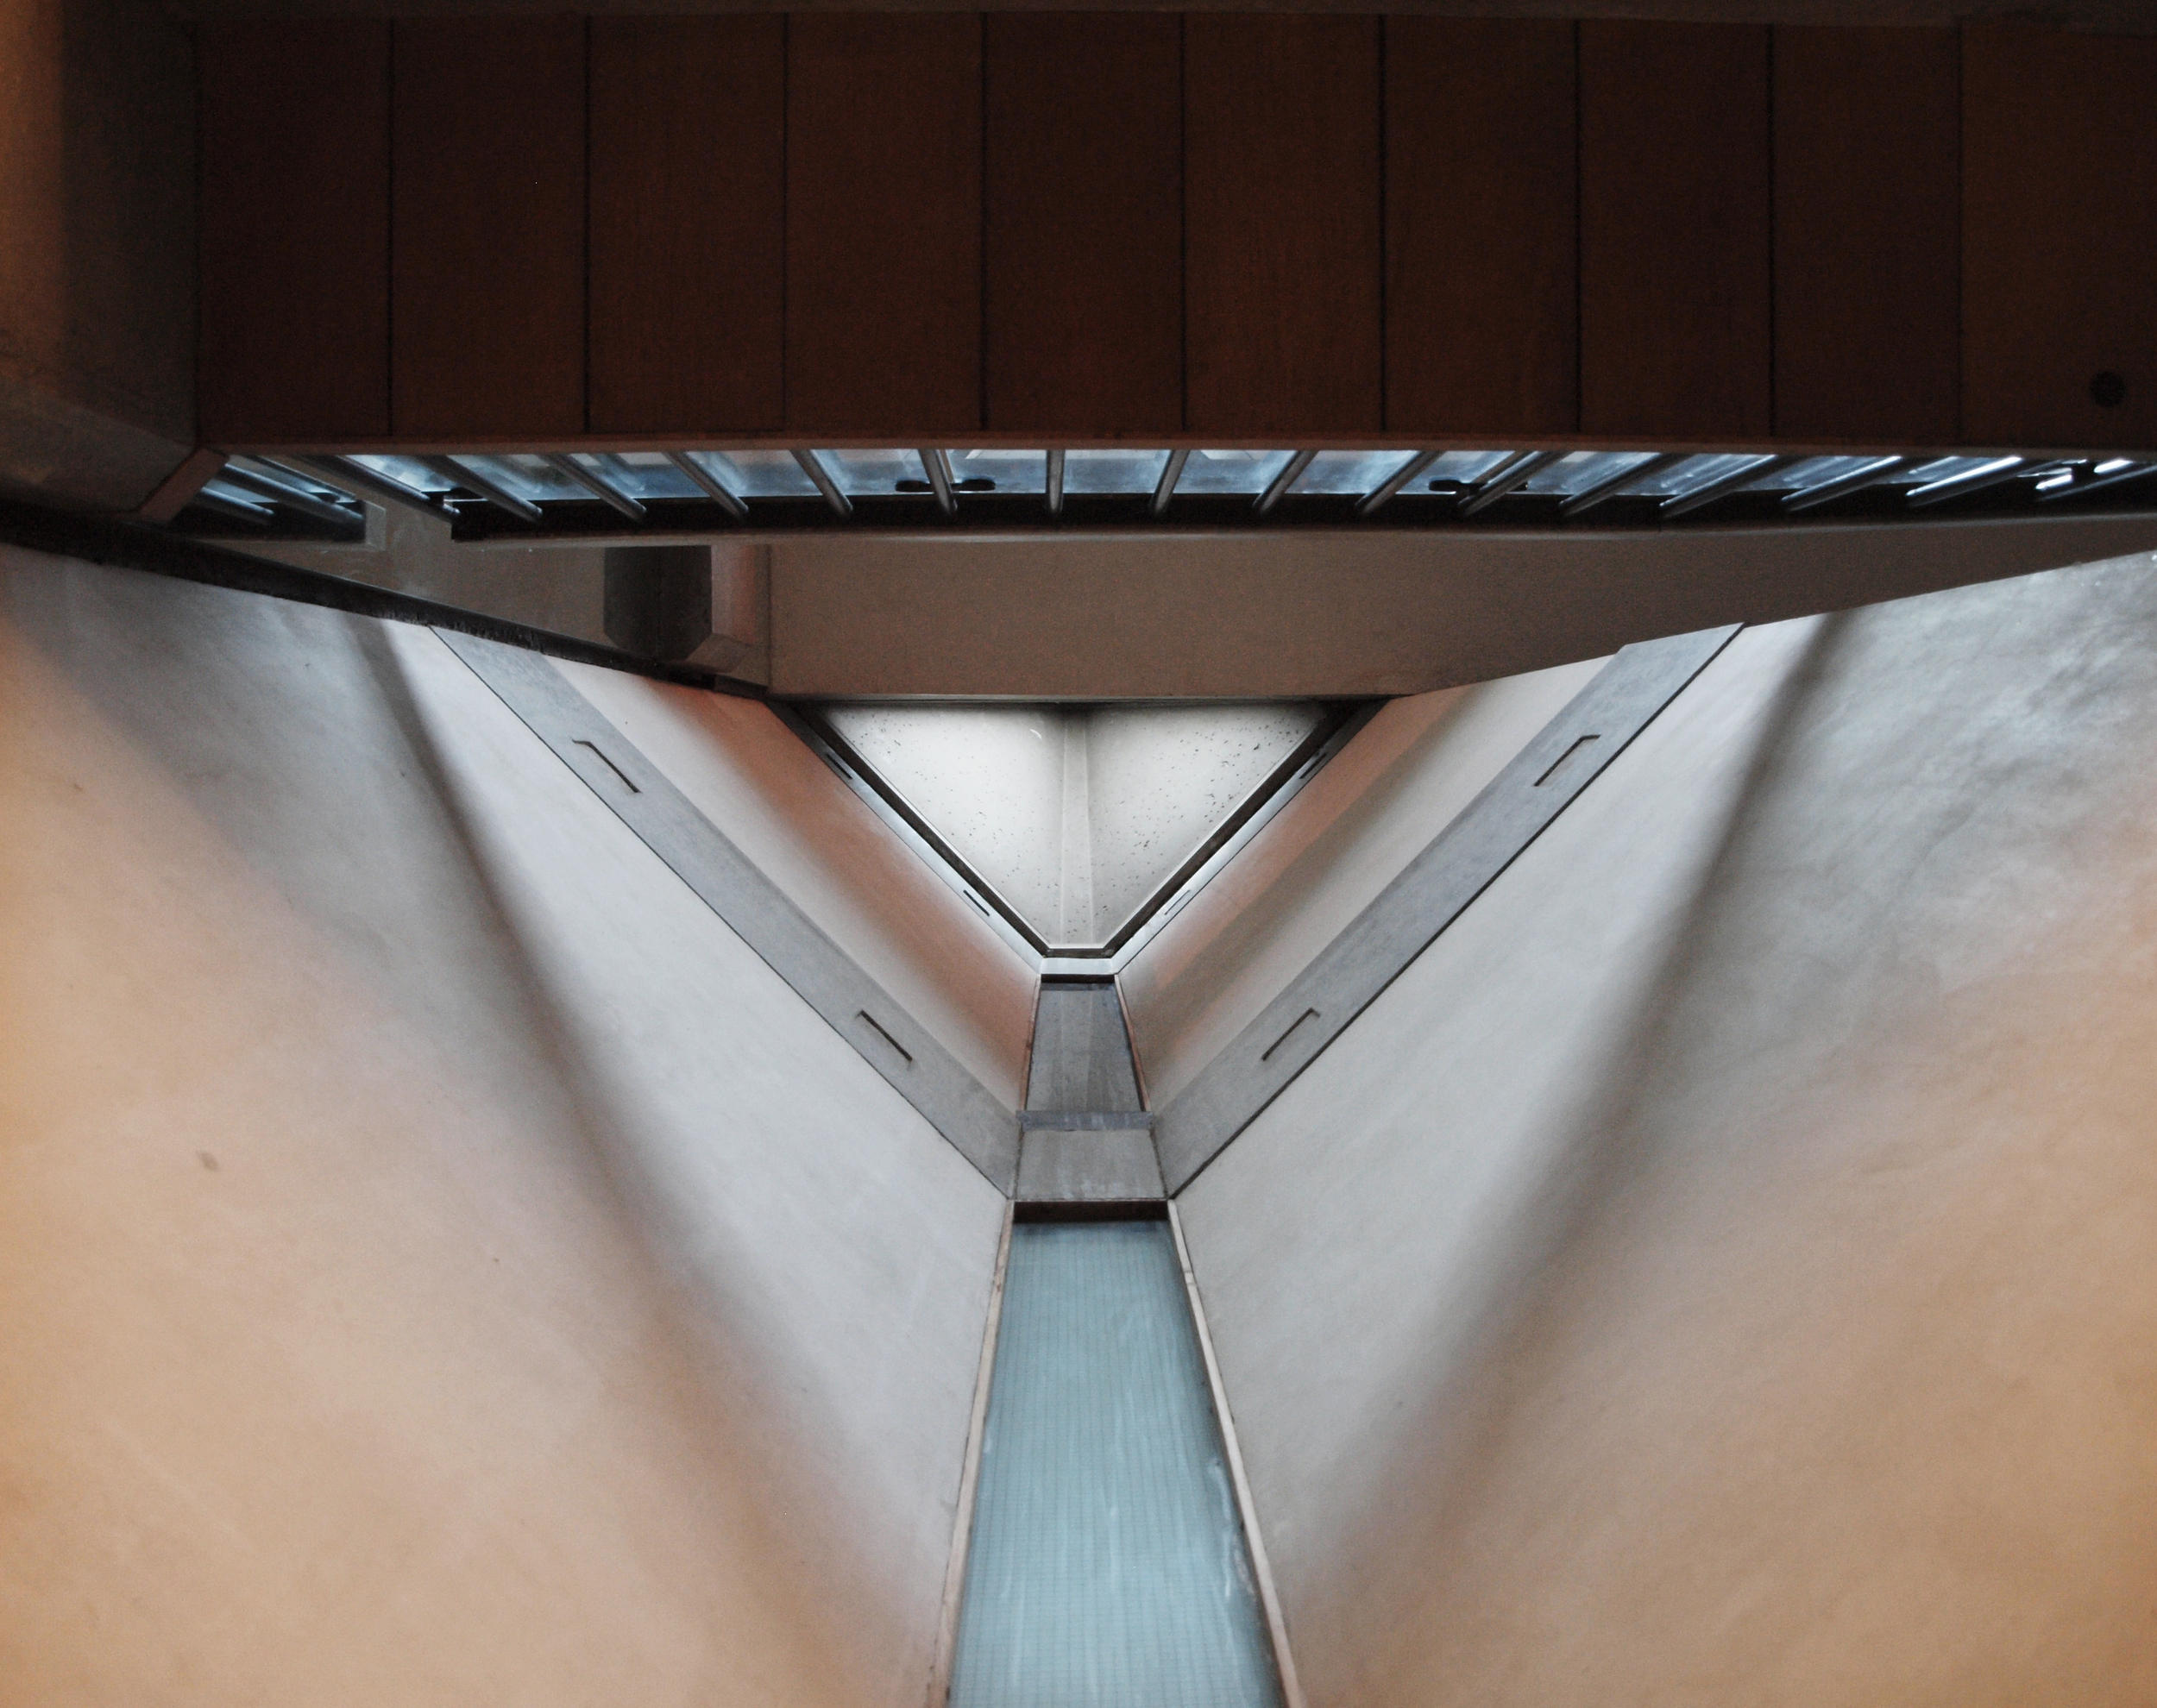 Looking up the gaps in the staircase